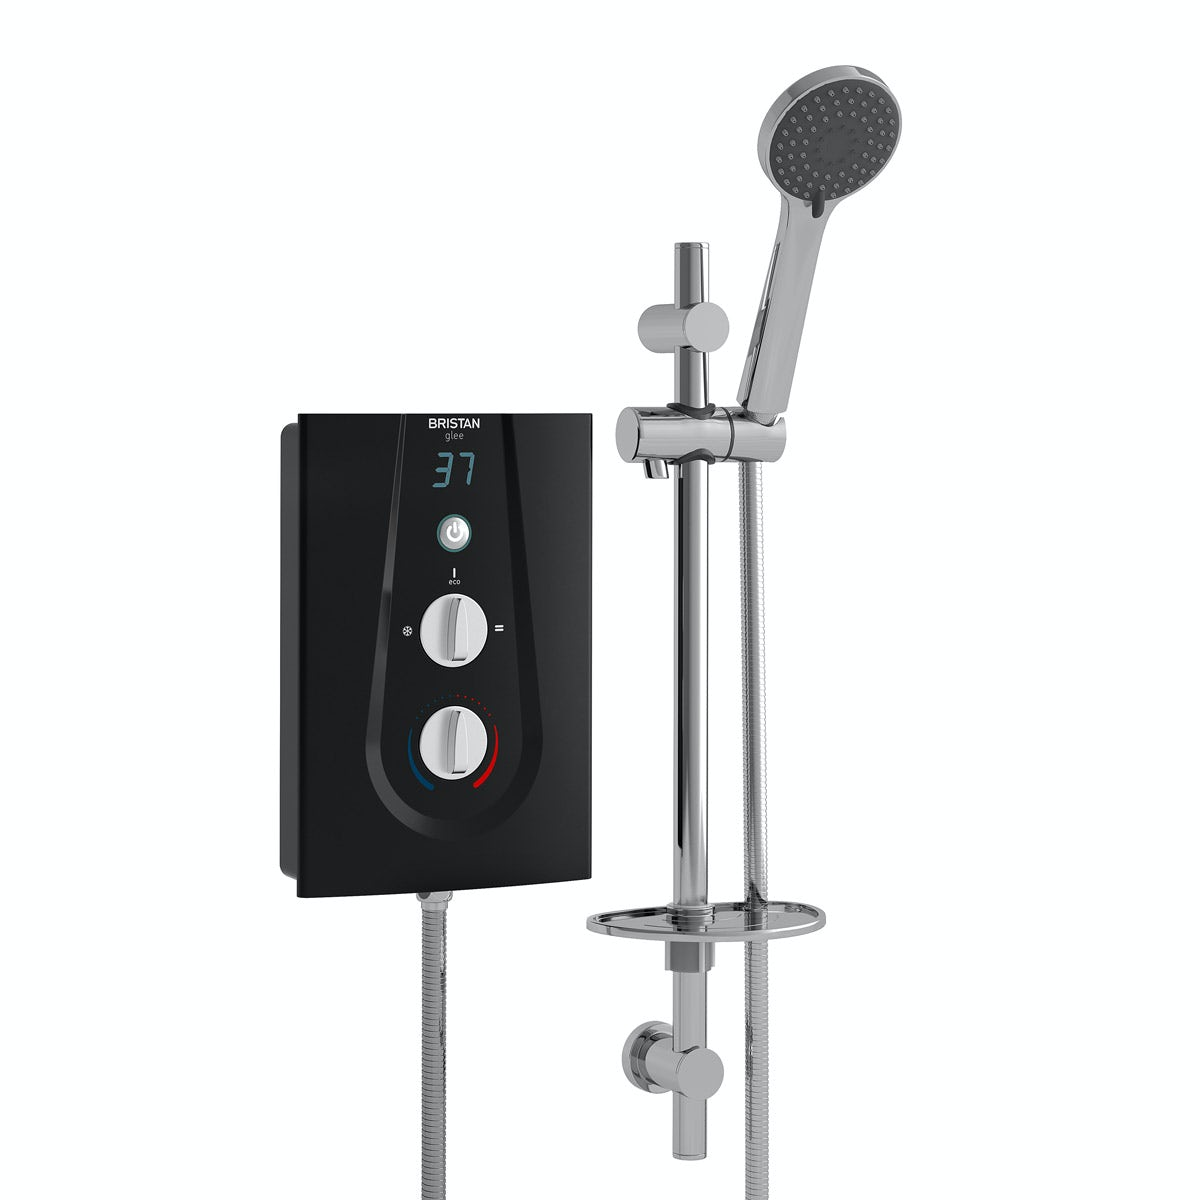 Bristan Glee electric shower black